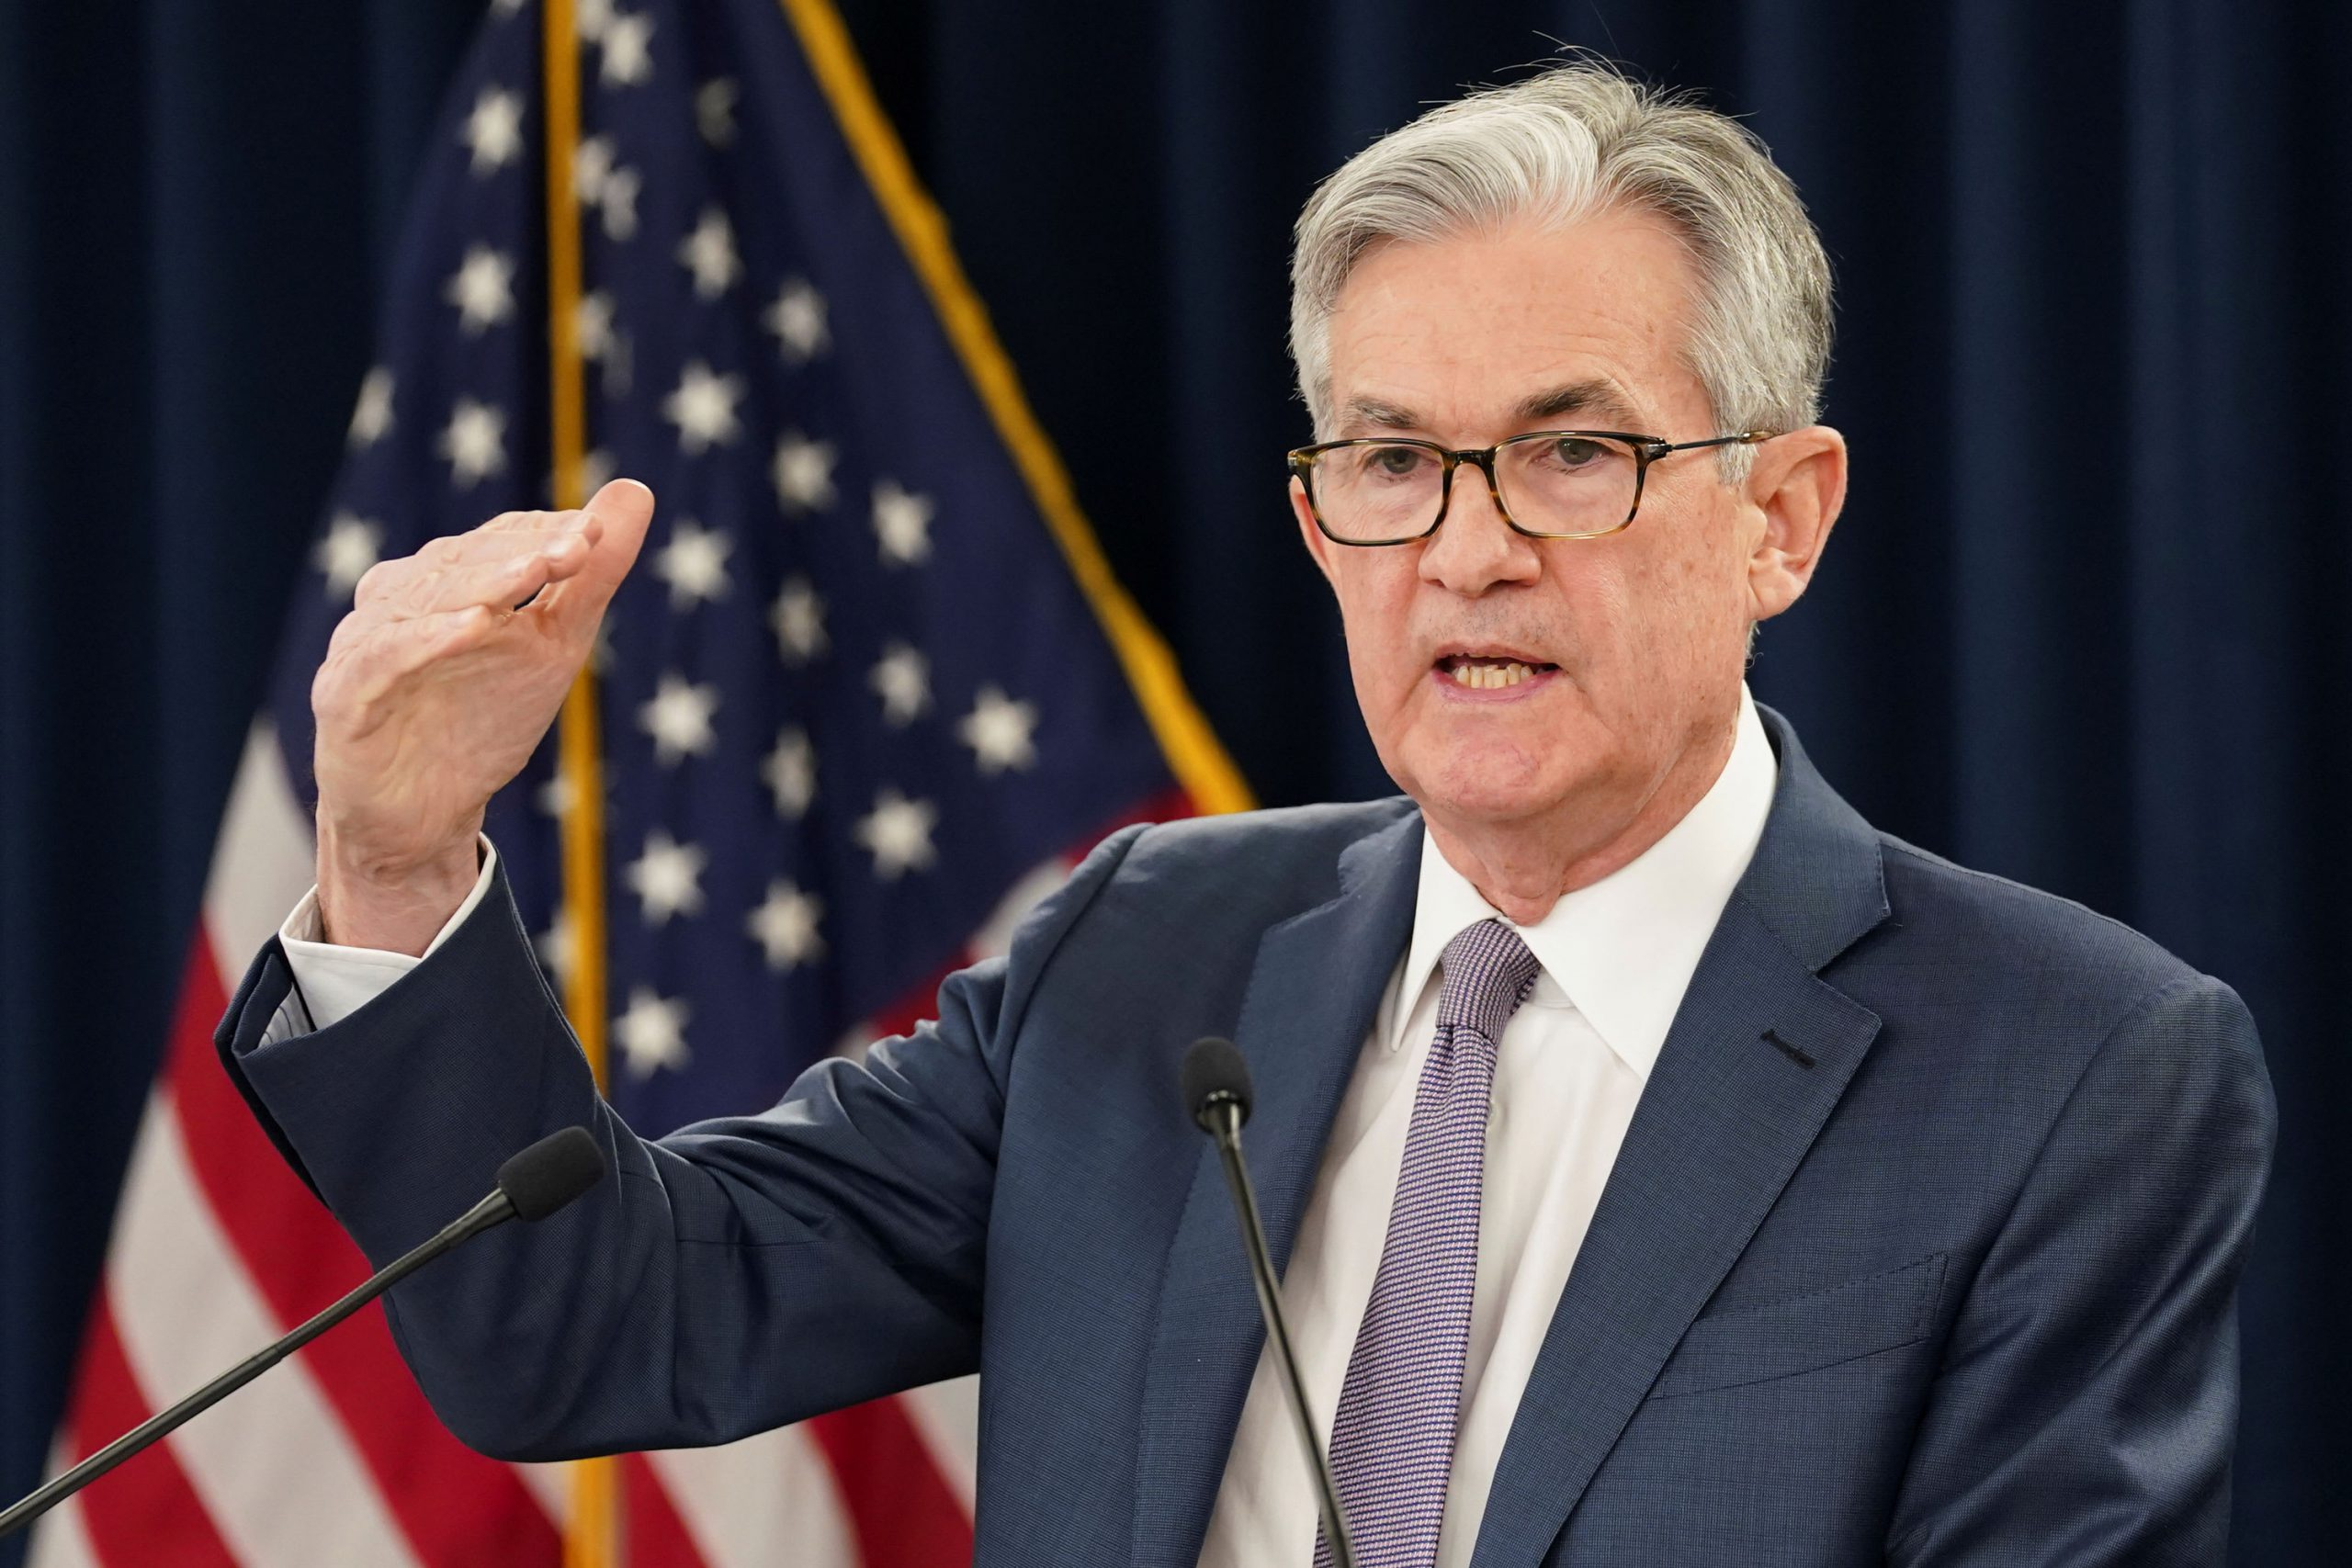 Powell's gloomy outlook has investors predicting the Fed may make another big move soon